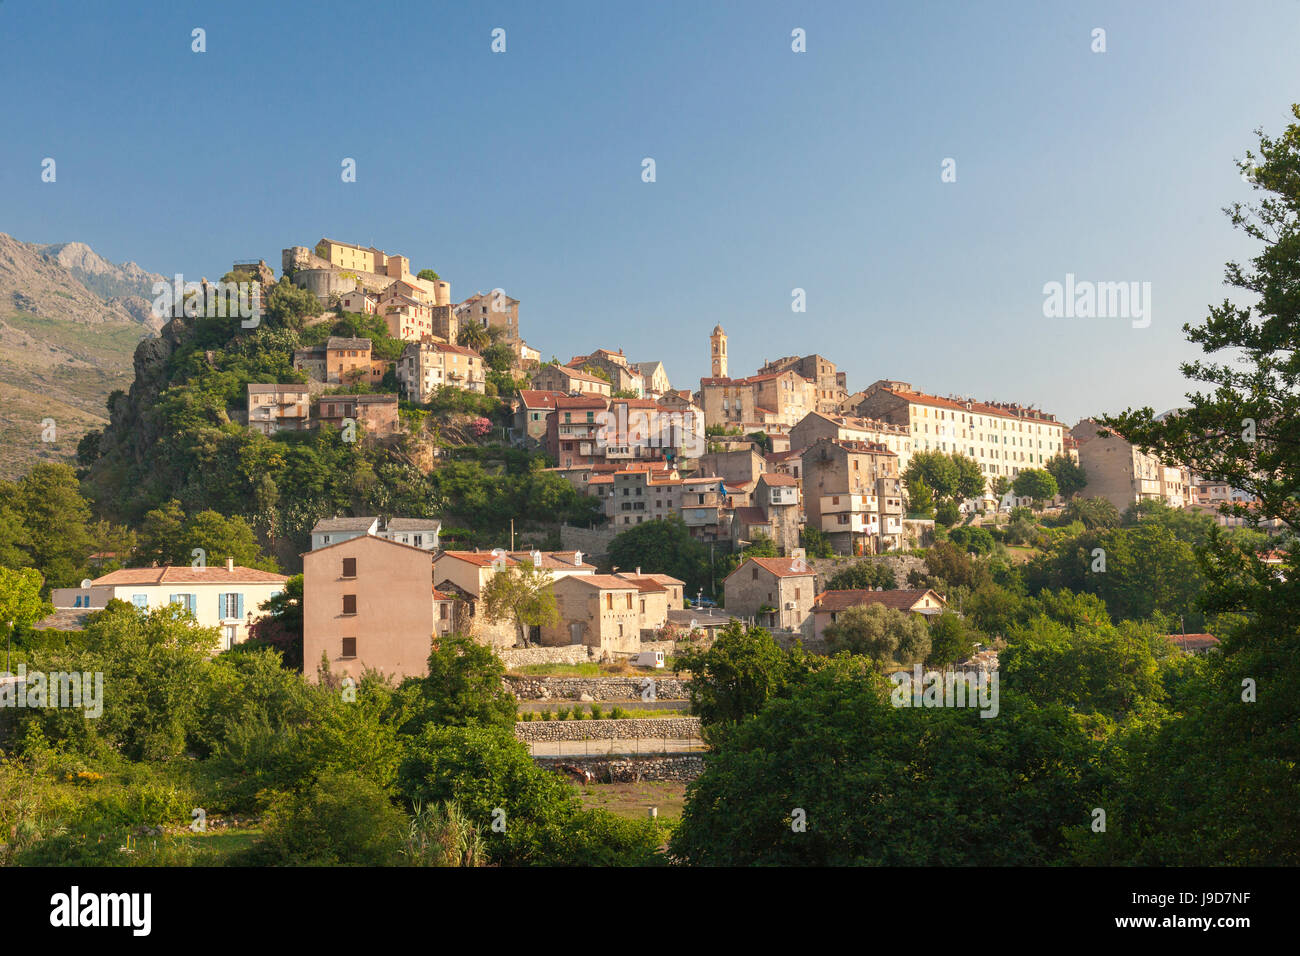 The old citadel of Corte perched on the hill surrounded by mountains, Haute-Corse, Corsica, France, Europe - Stock Image